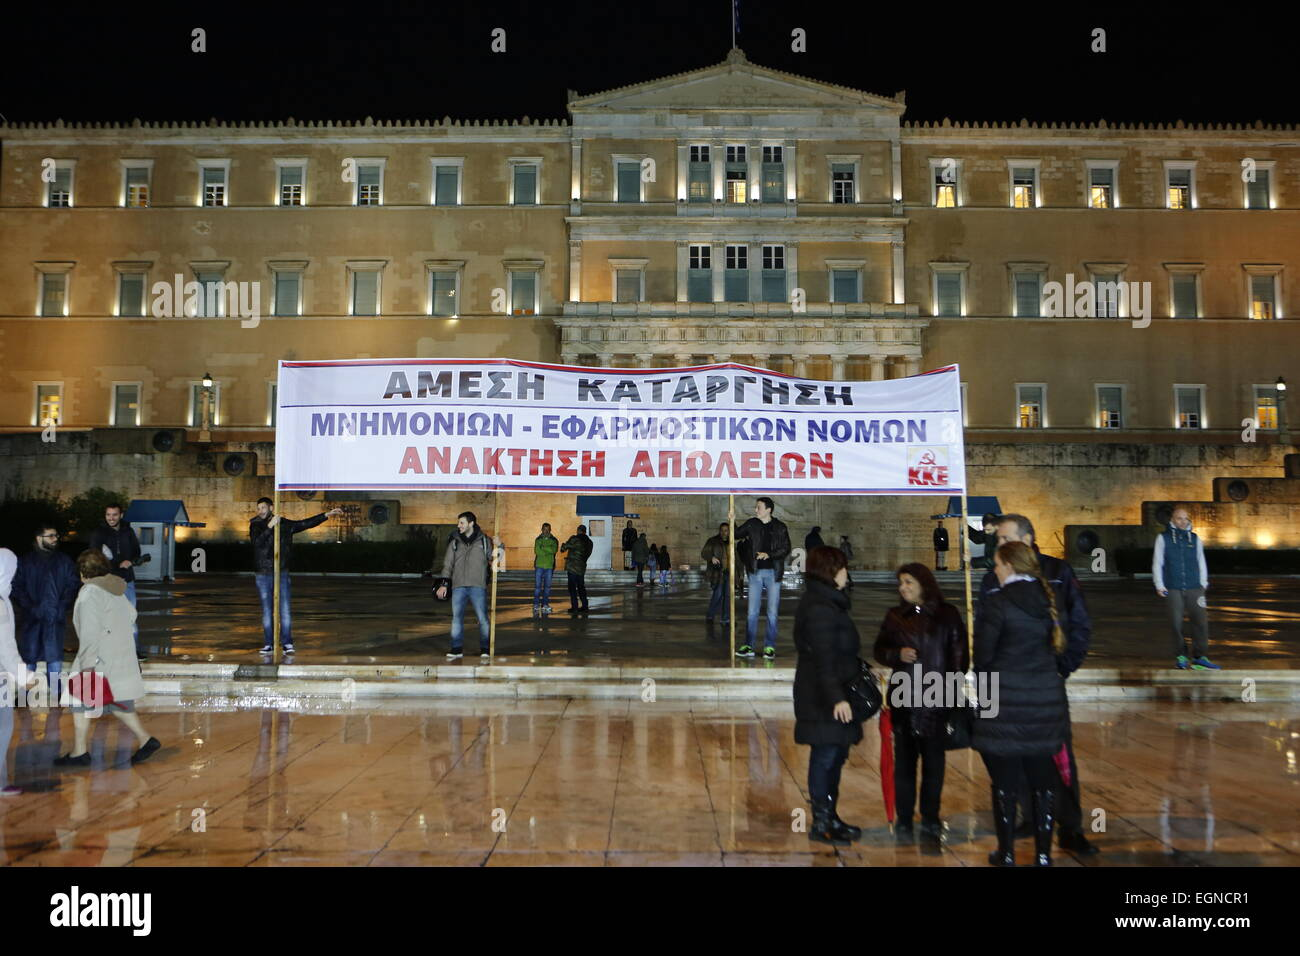 Athens, Greece. 27th Feb, 2015.  A banner stands outside the Greek Parliament, calling for withdrawal from the EU - Stock Image